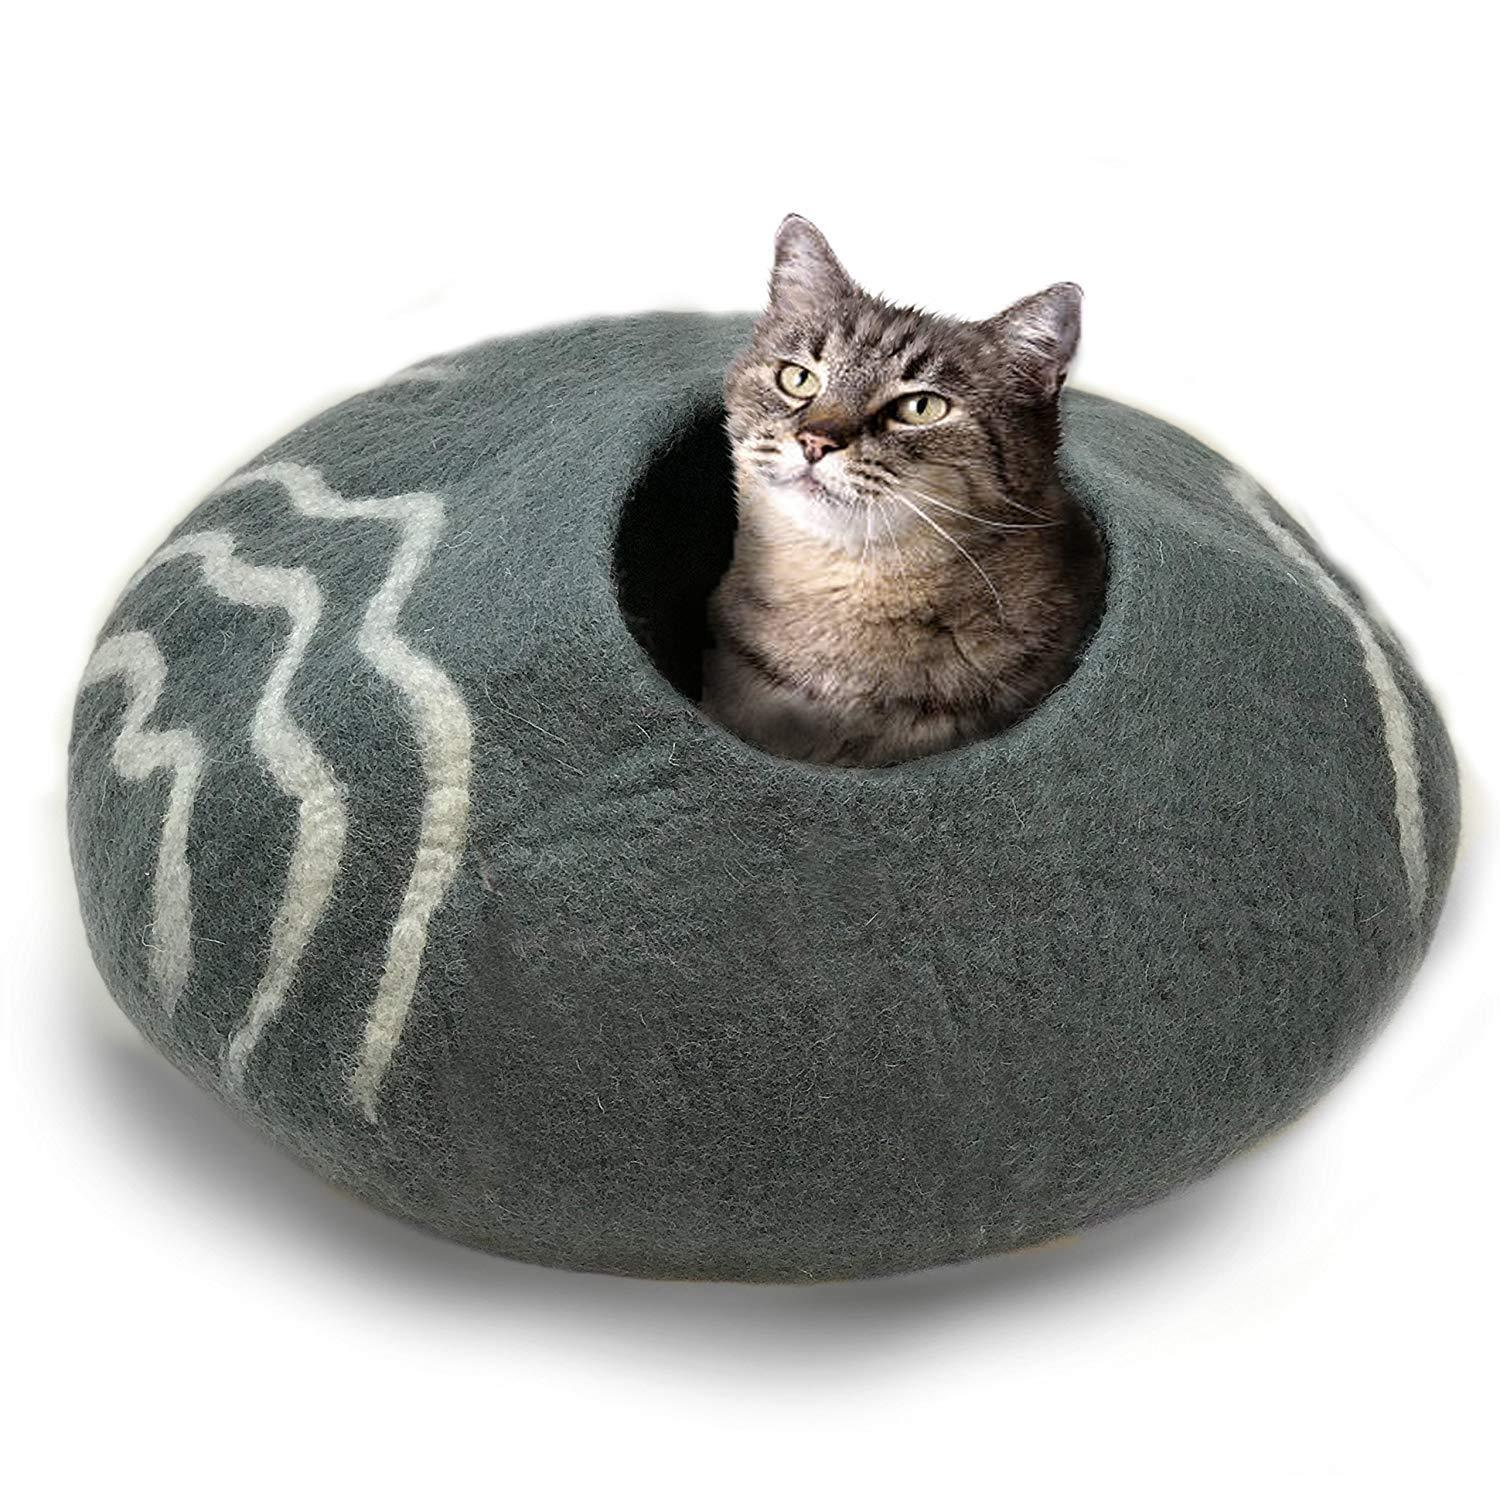 Where to Find an Ideal Cat Cave?